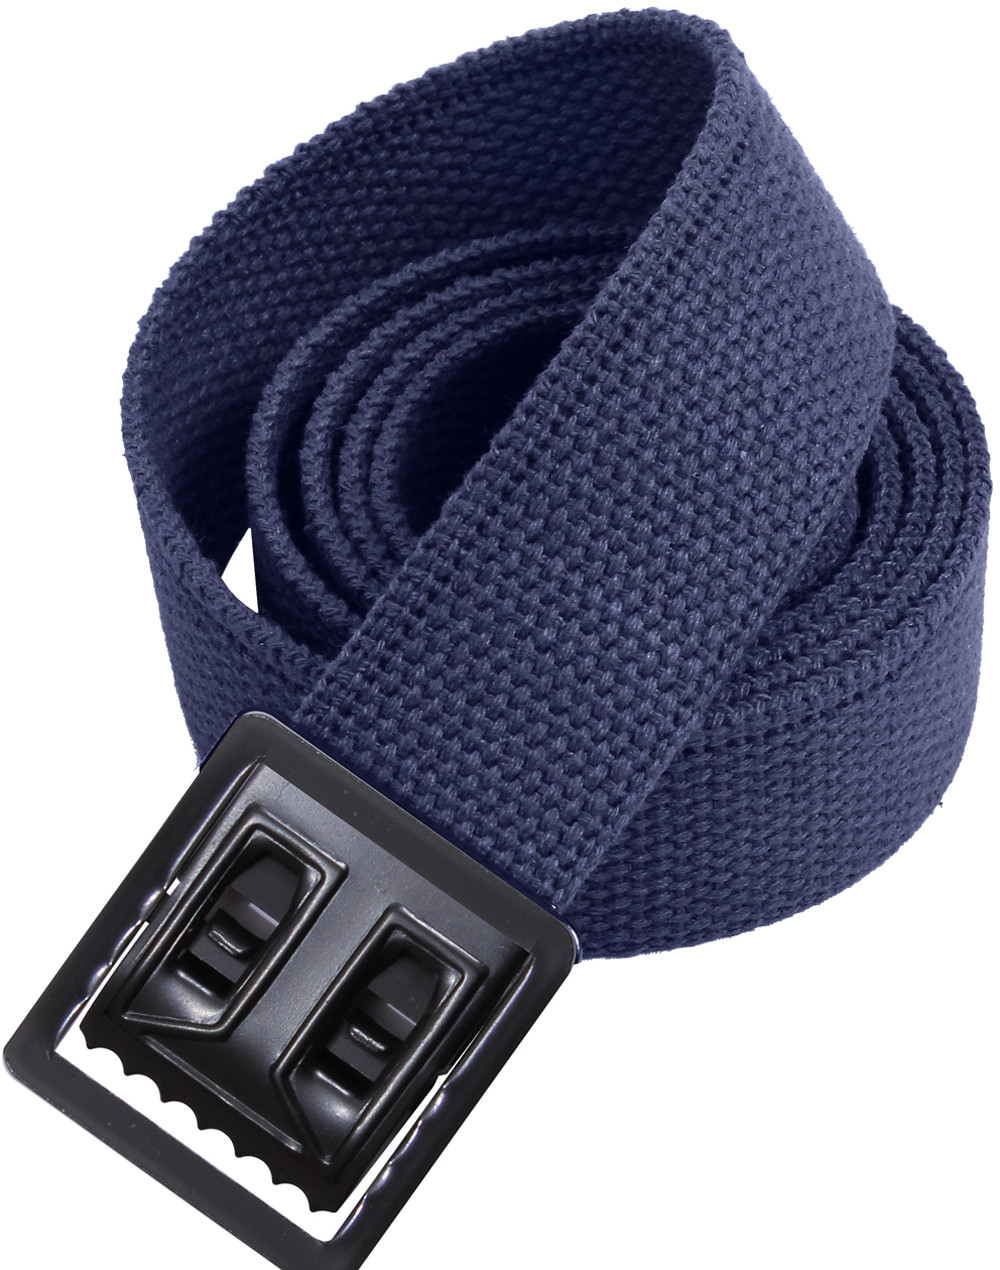 Navy Blue Military Cotton Web Belt   Black Open Face Buckle 89866d6d011